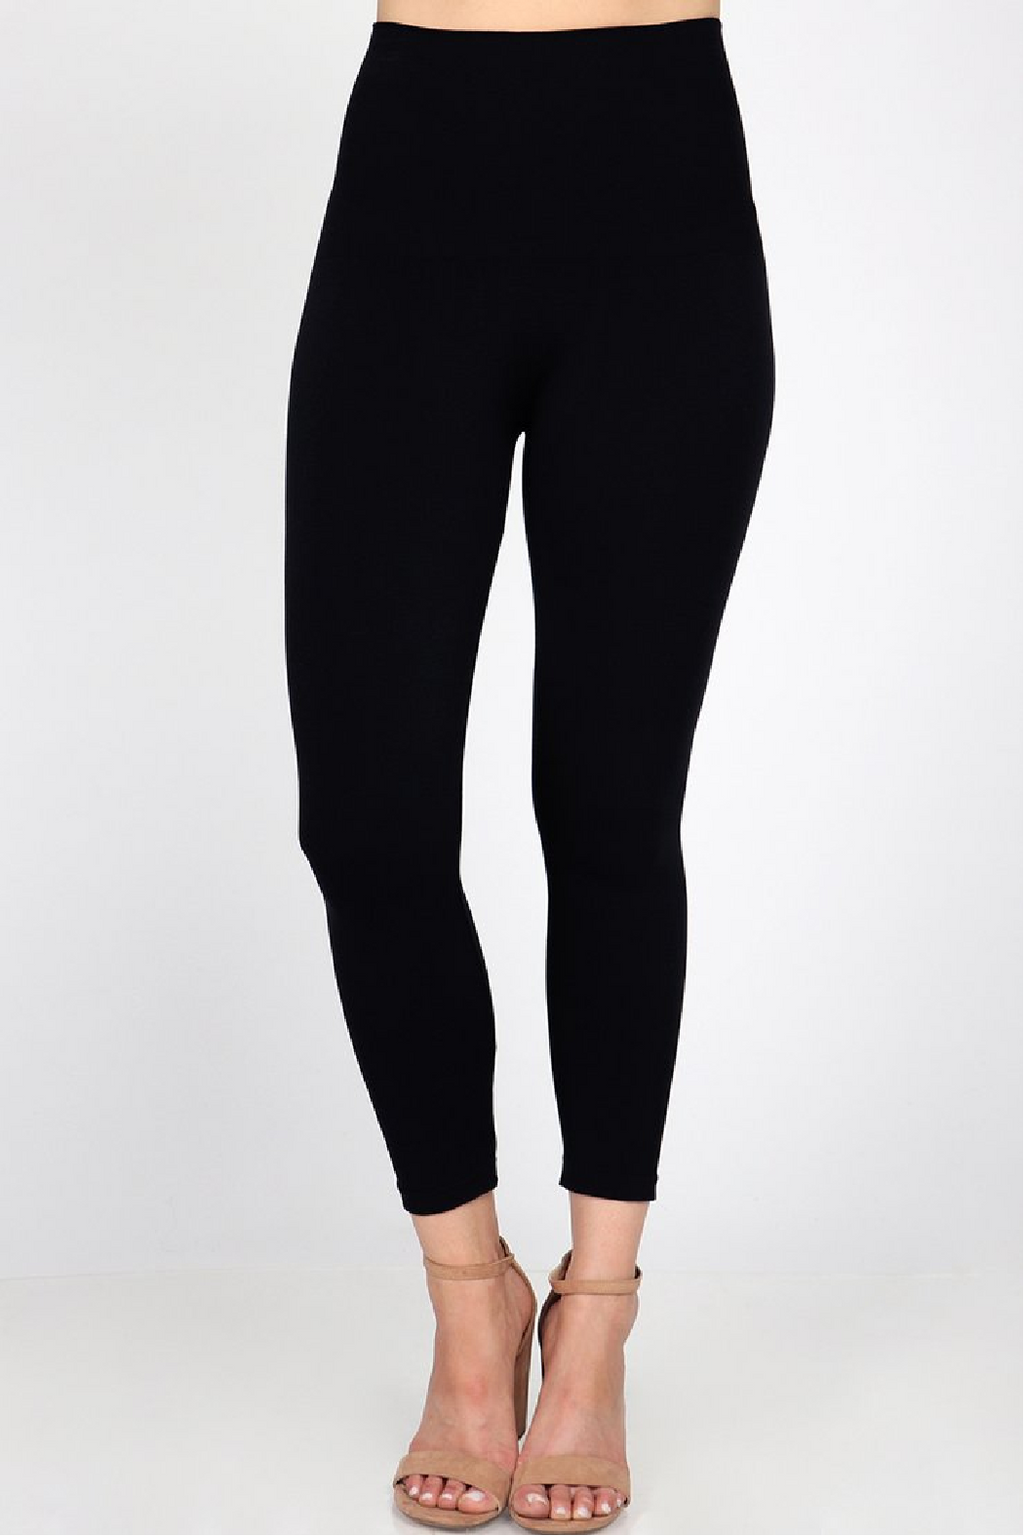 M.Rena Cropped Tummy Tuck Legging - Black